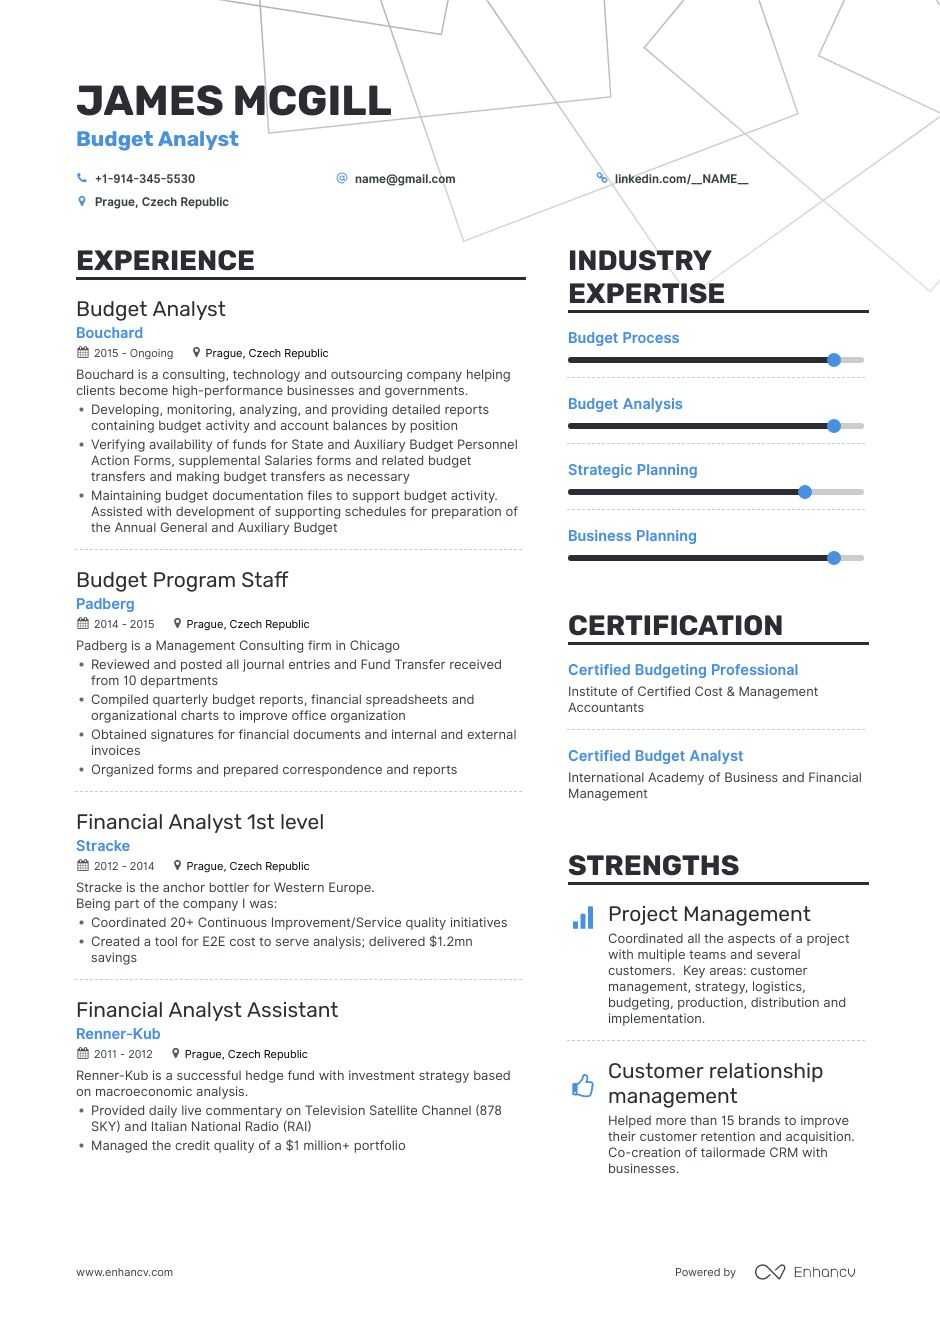 budget analyst resume samples and writing guide for enhancv budgeting skills demand Resume Budgeting Skills For Resume